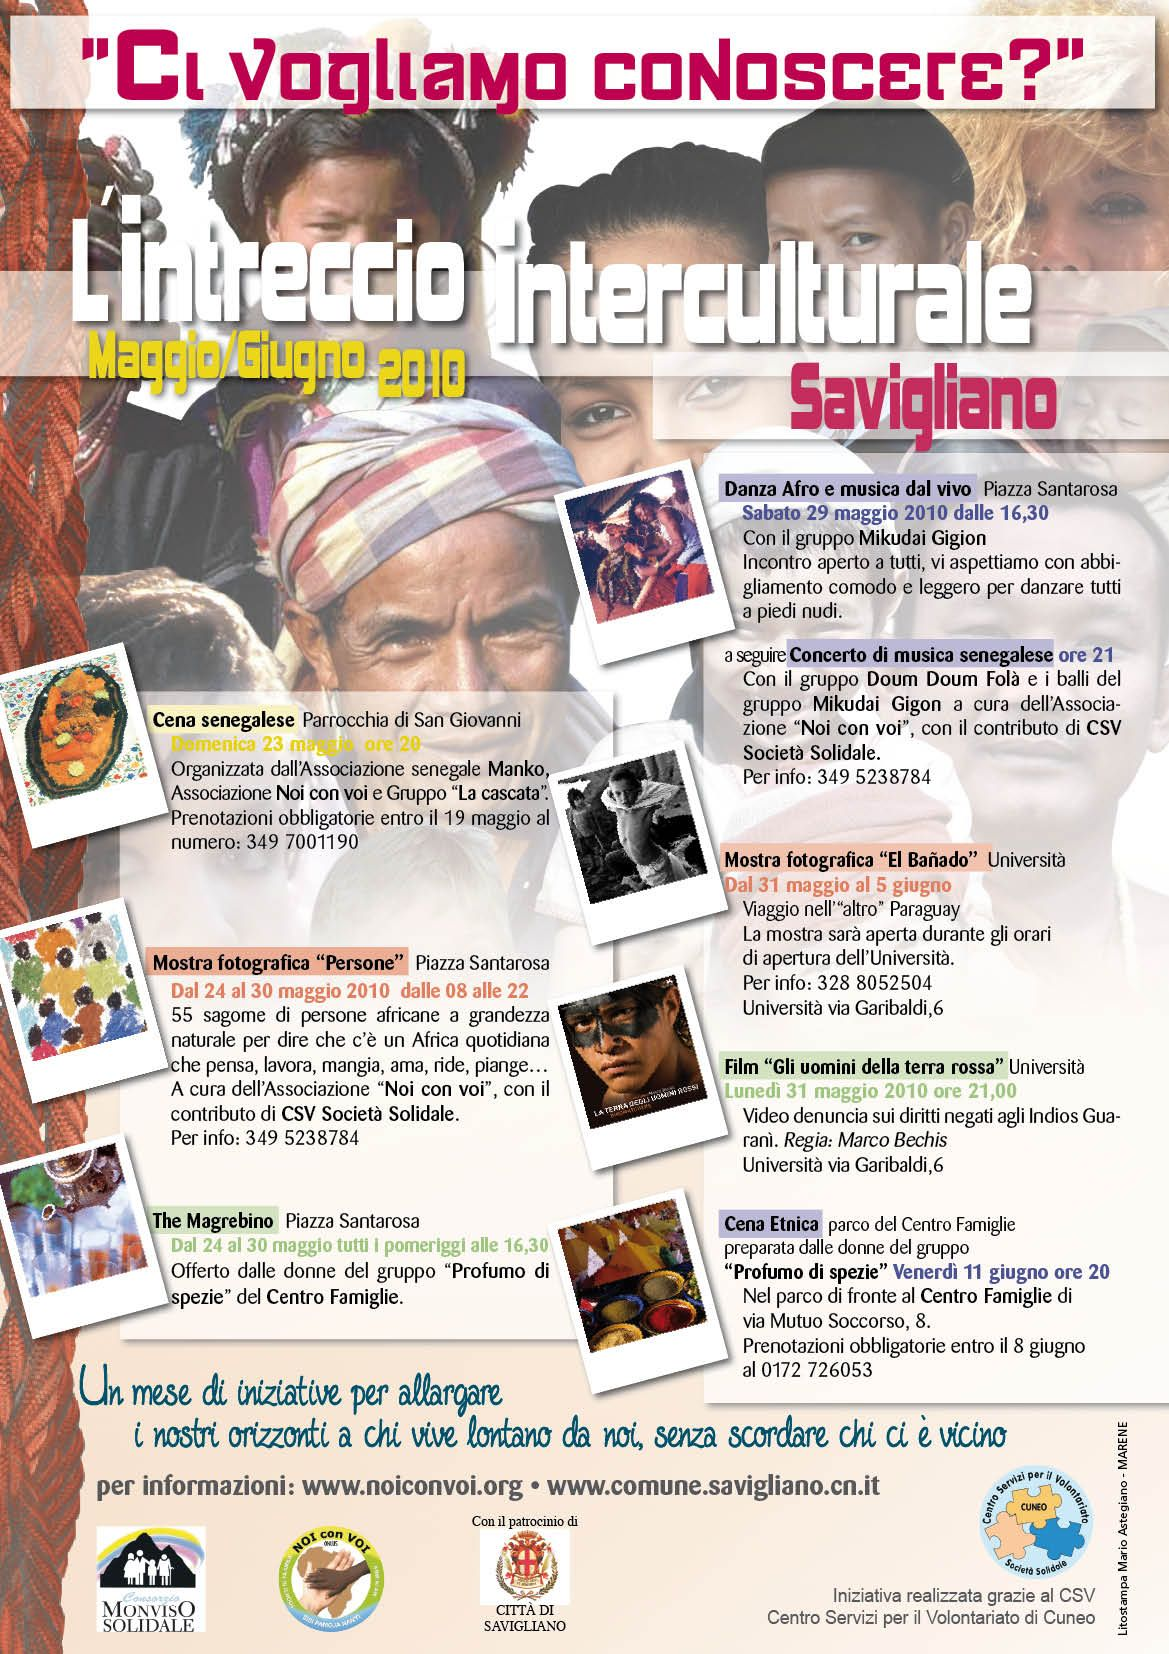 2010: Intreccio Interculturale